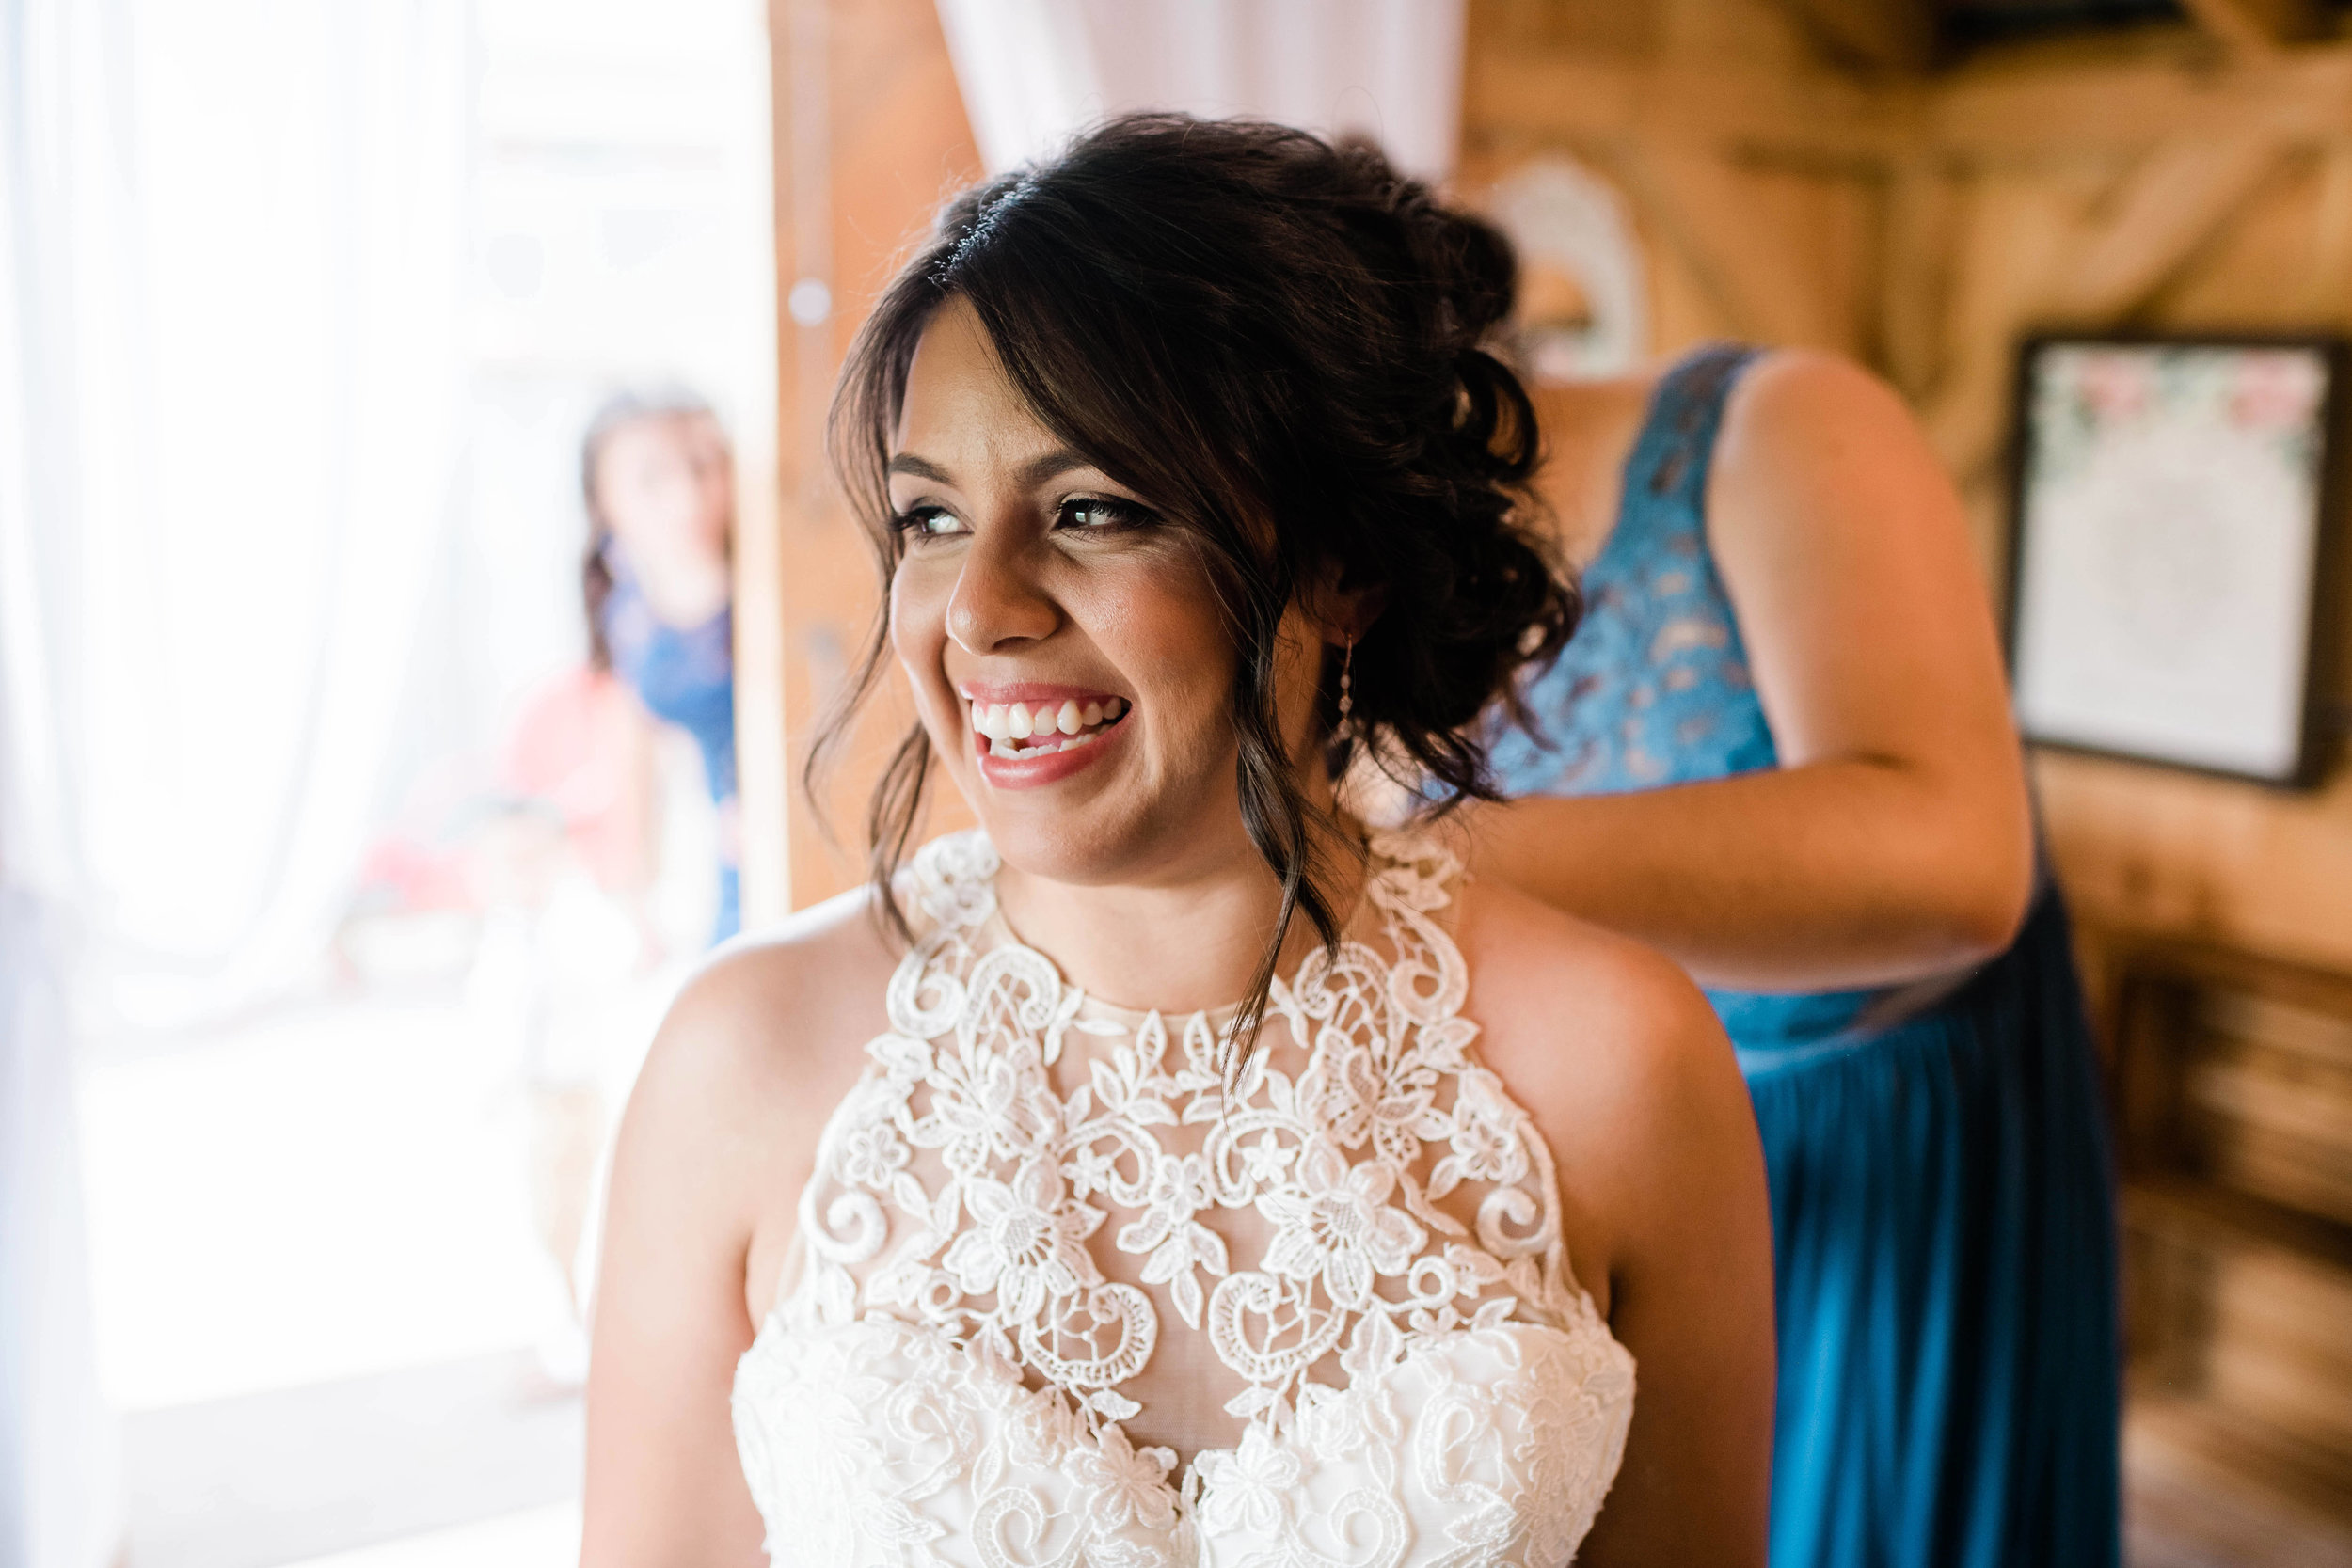 Bride smiles as her dress gets fastened